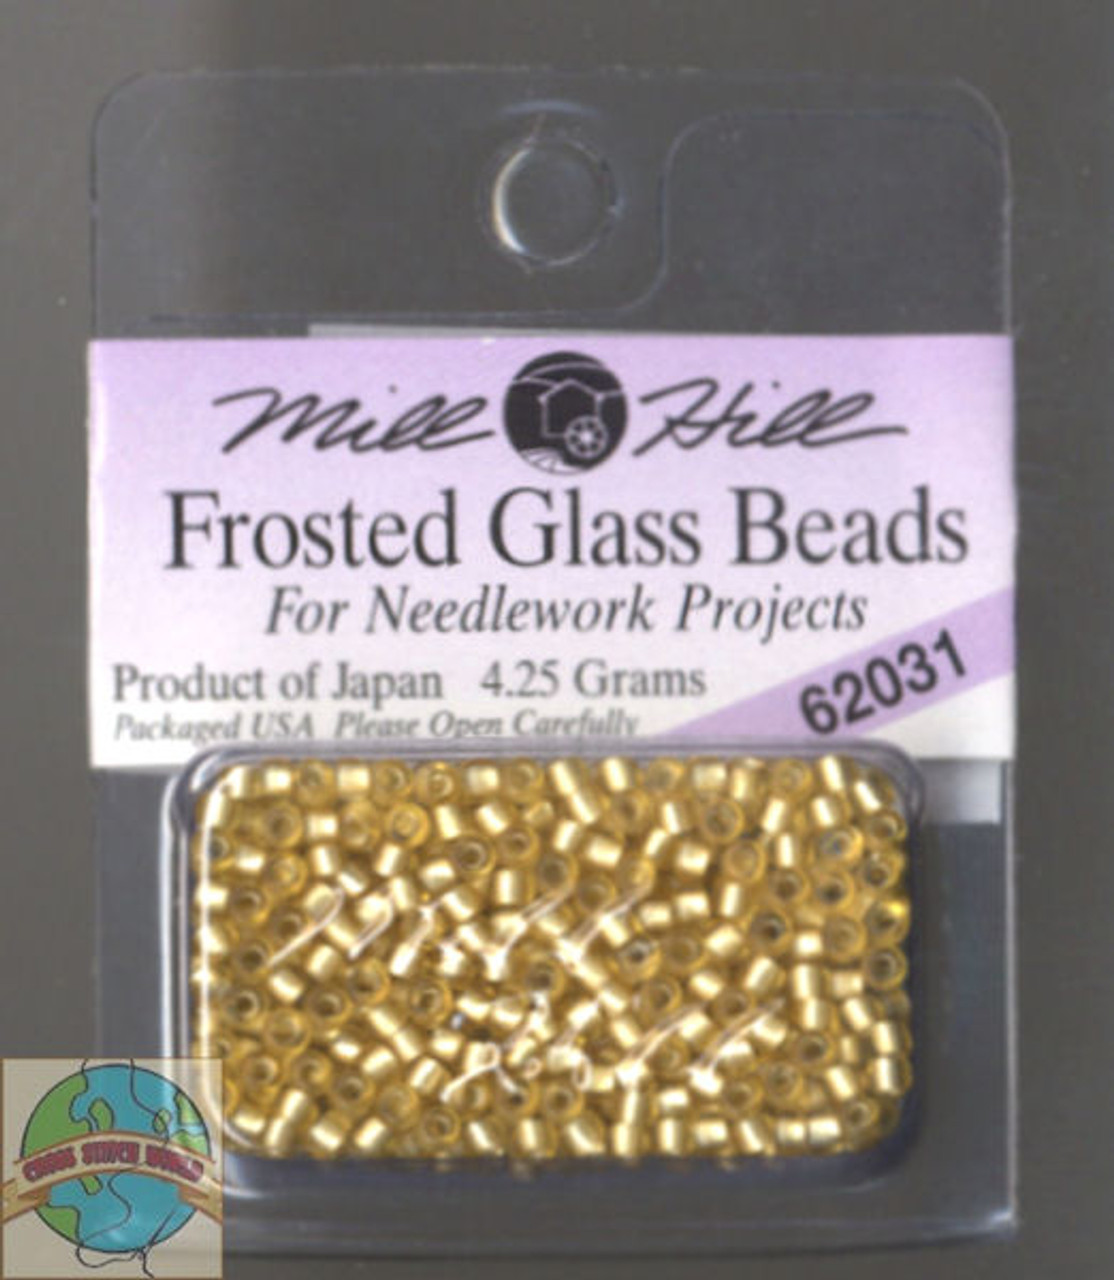 Mill Hill Frosted Glass Seed Beads 4.25g Gold #62031